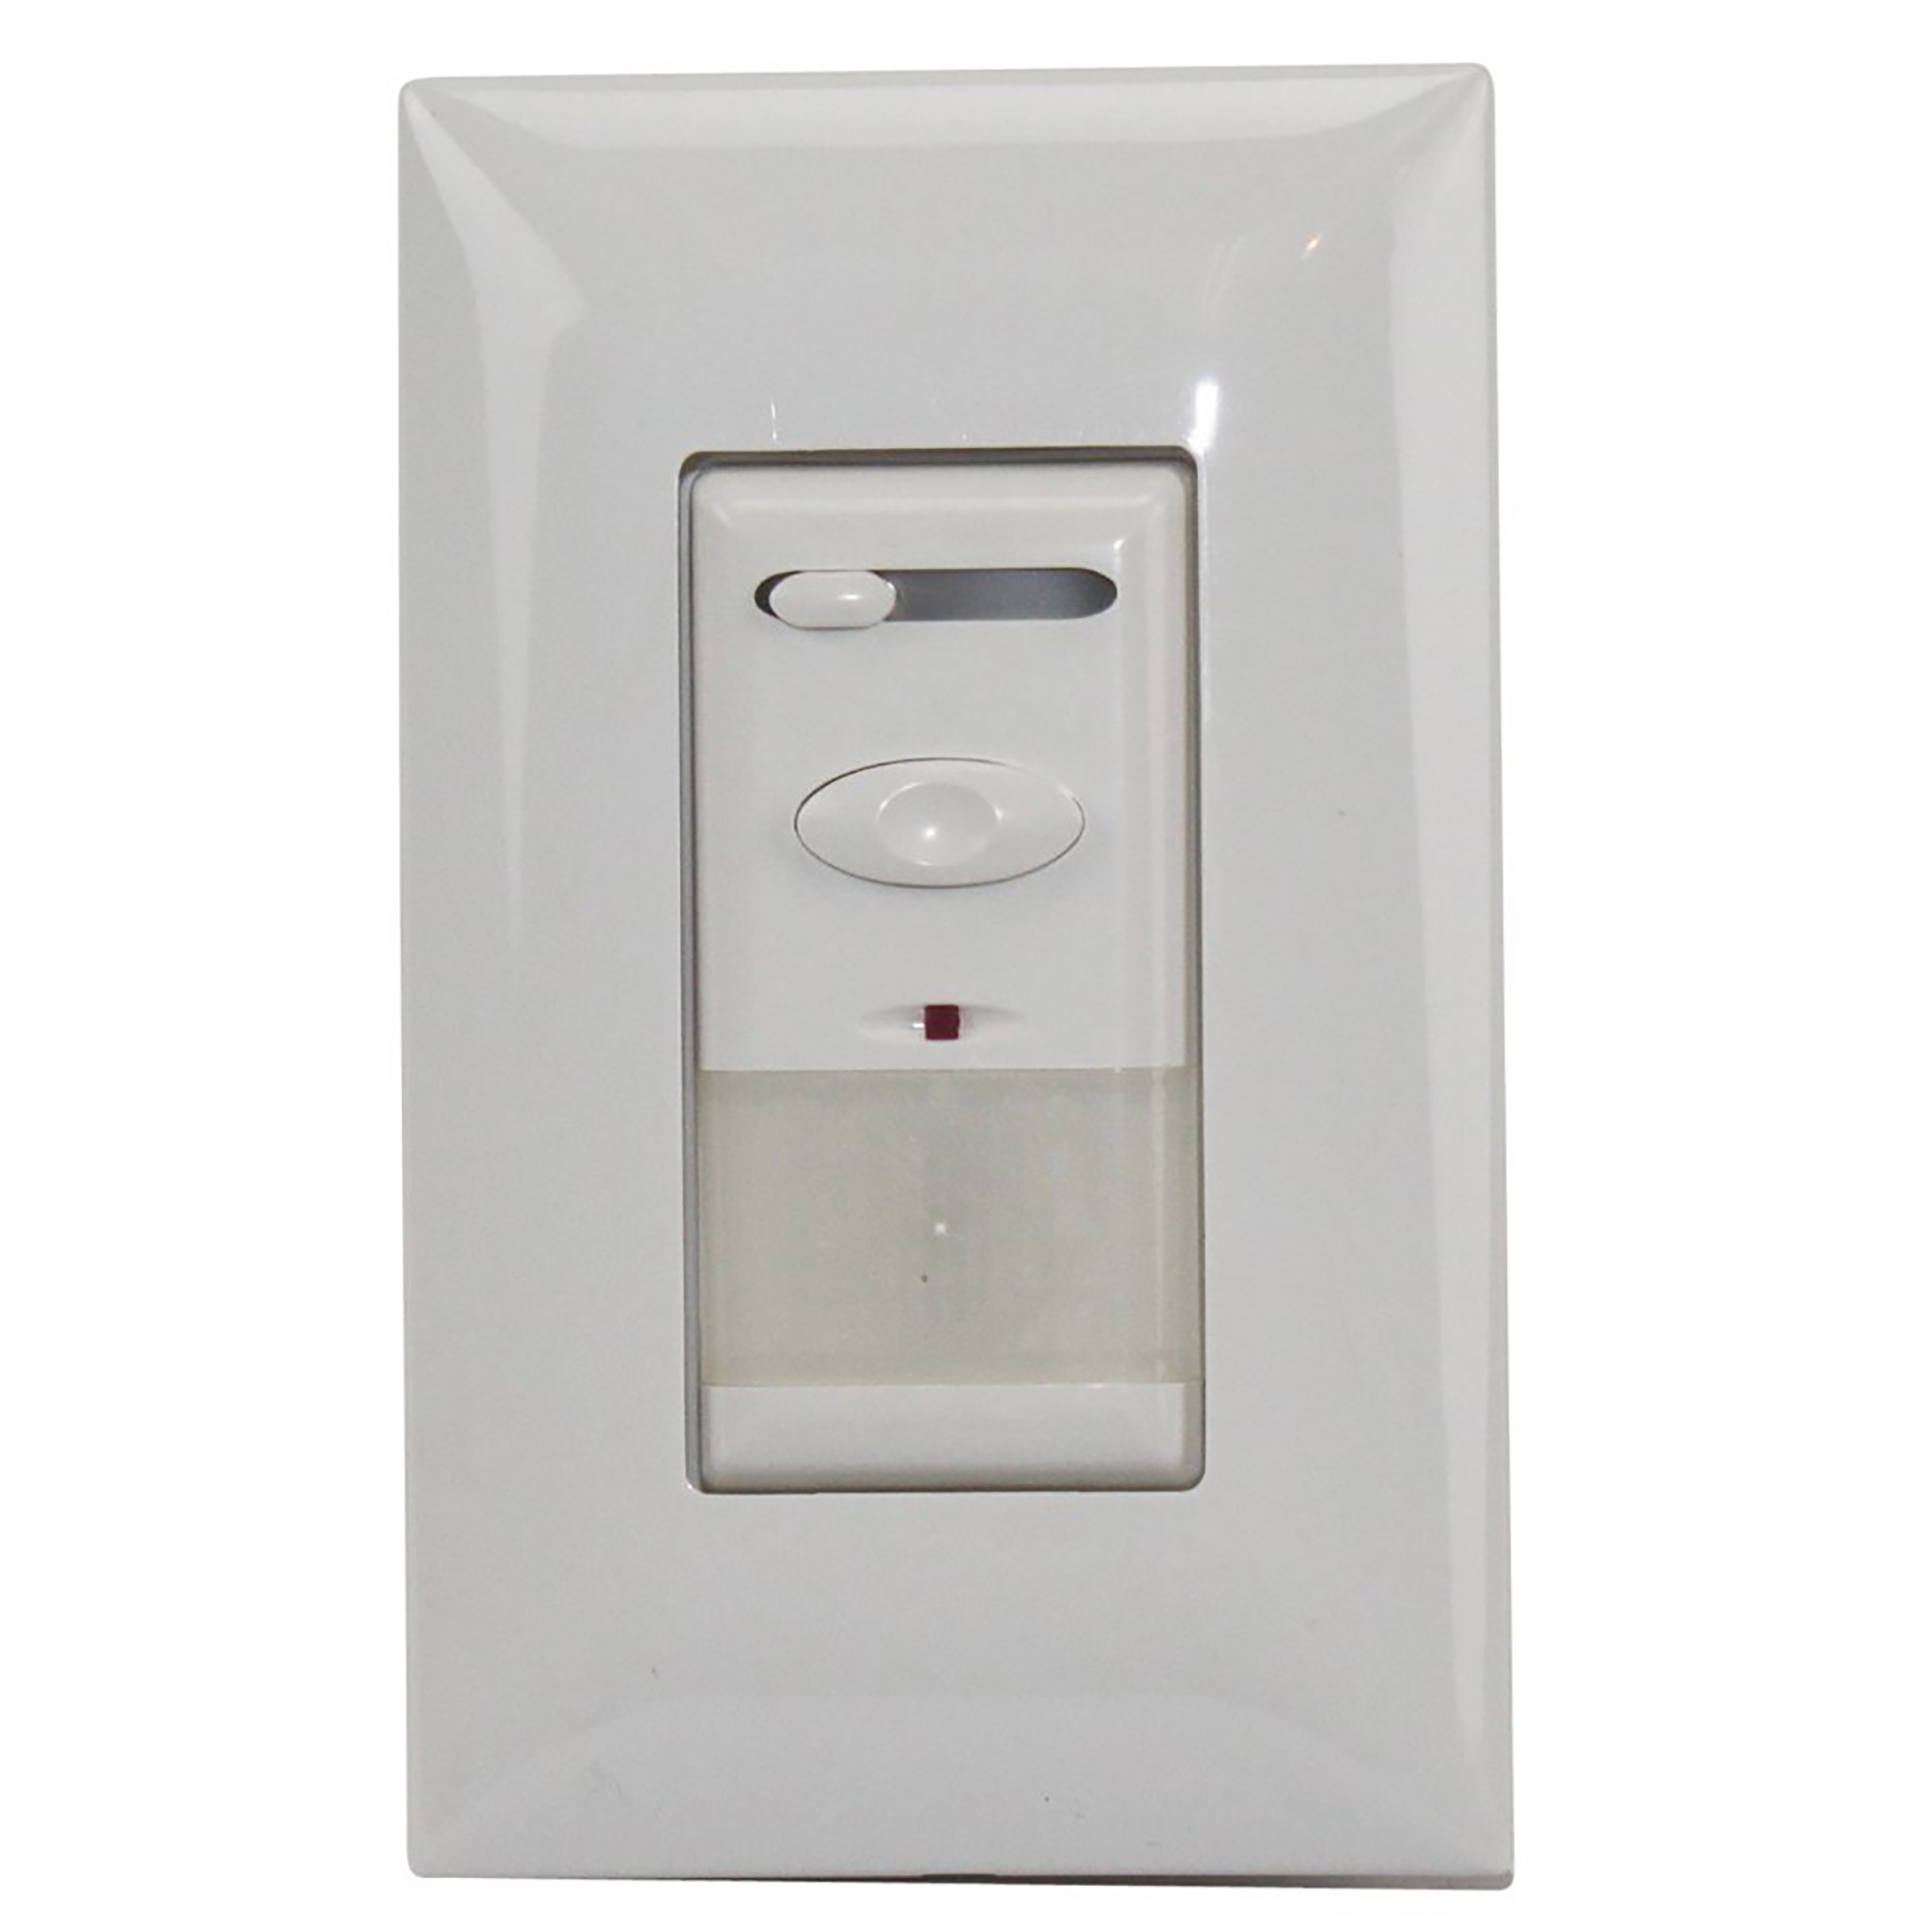 is for 1 watt stopper wd 180 dimmable pir wall switch occupancy sensor. Black Bedroom Furniture Sets. Home Design Ideas